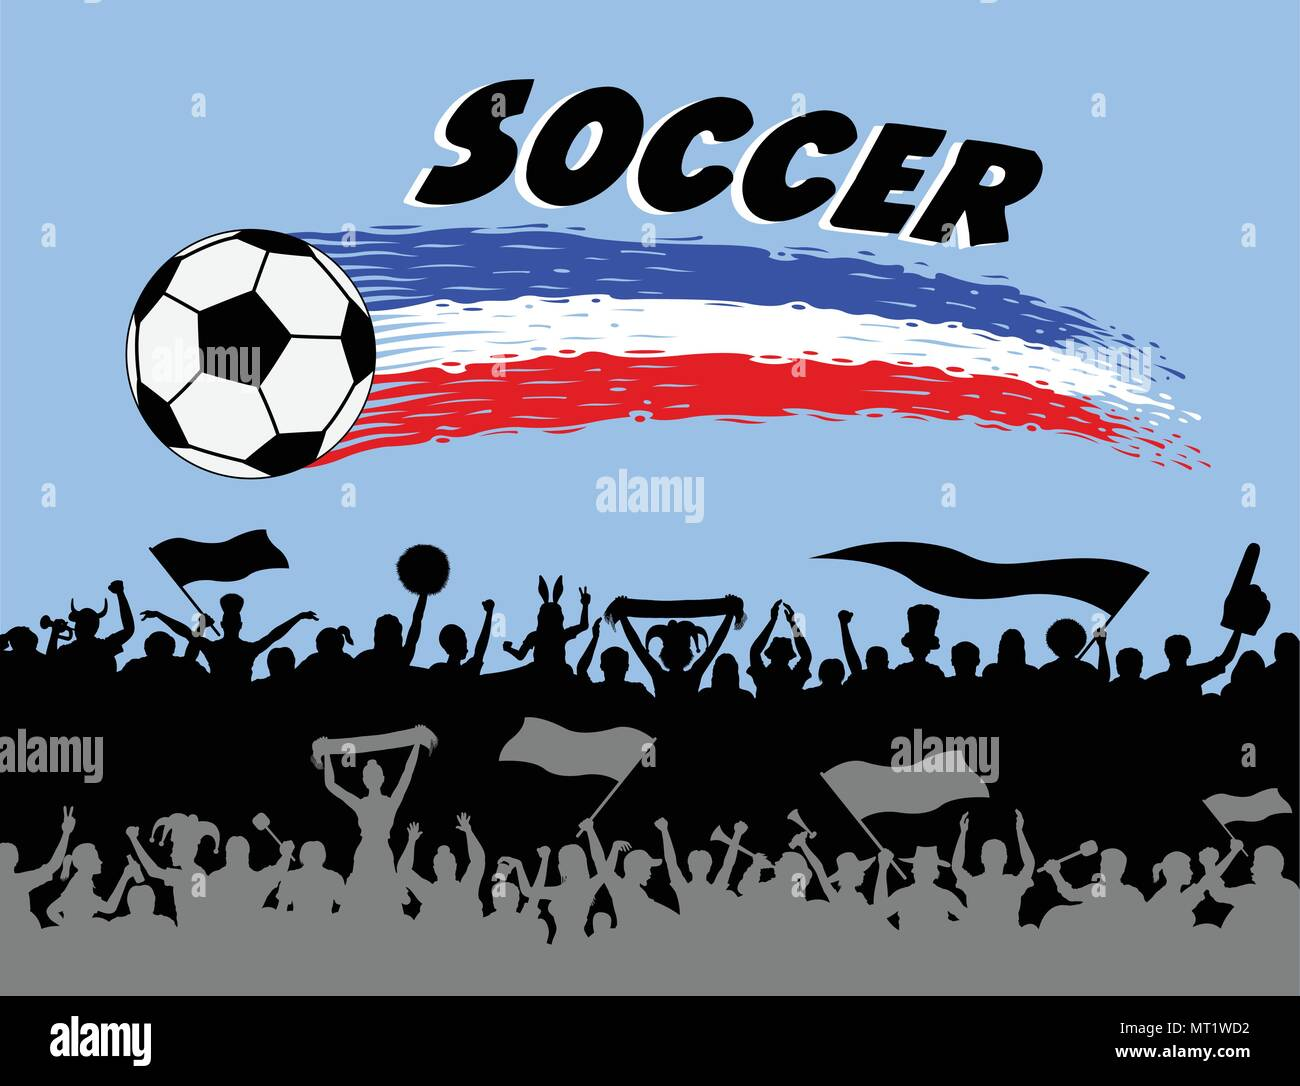 Soccer ball and brush strokes with football supporters silhouettes. The silhouette and the background are in different layers and the text types do no - Stock Vector